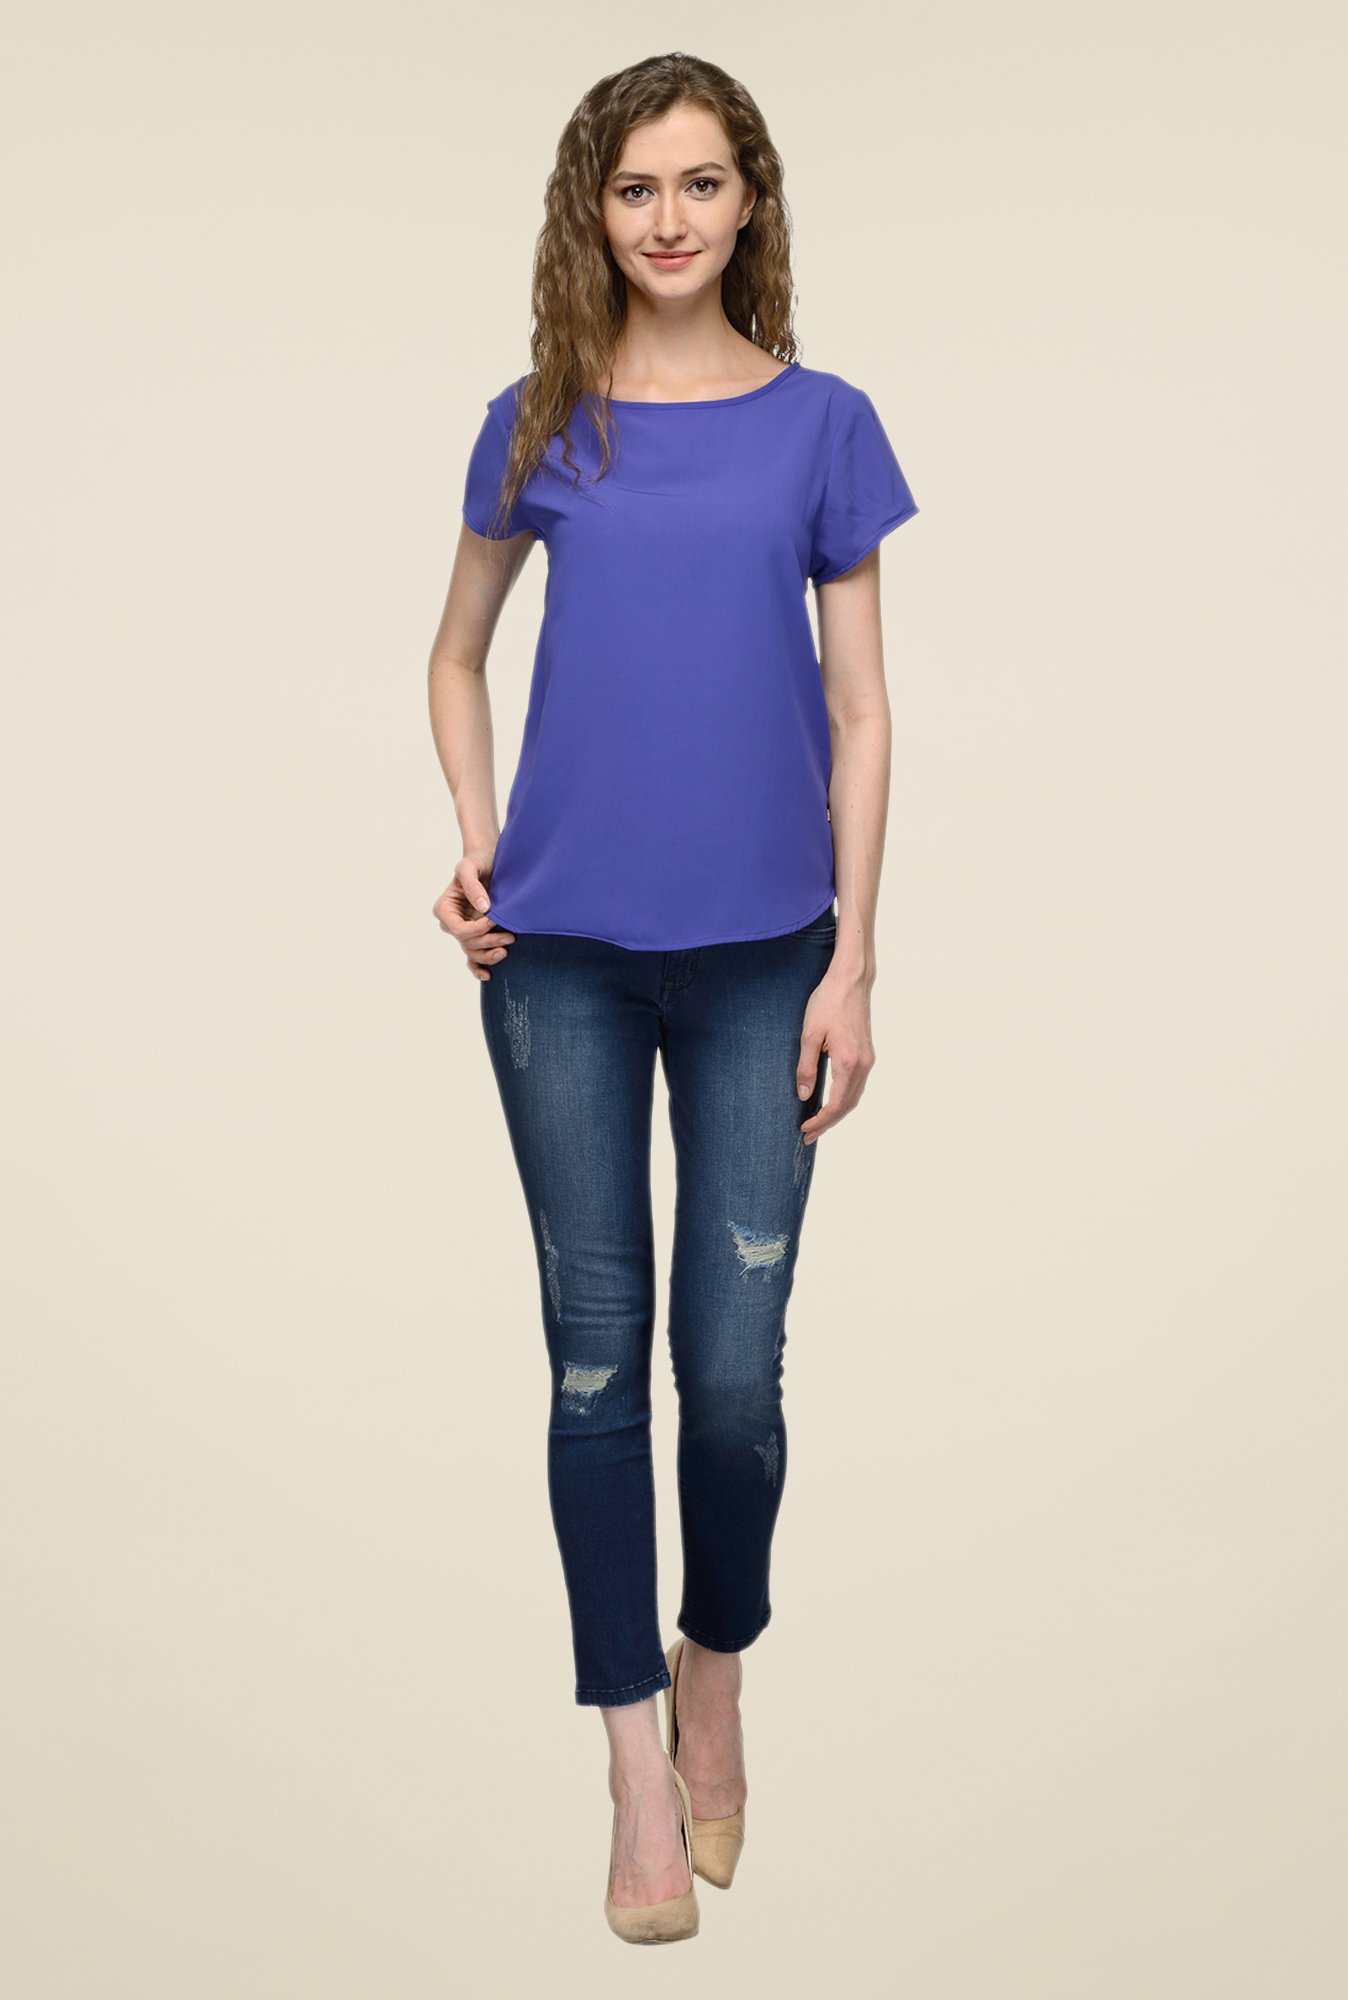 United Colors of Benetton Blue Solid Top